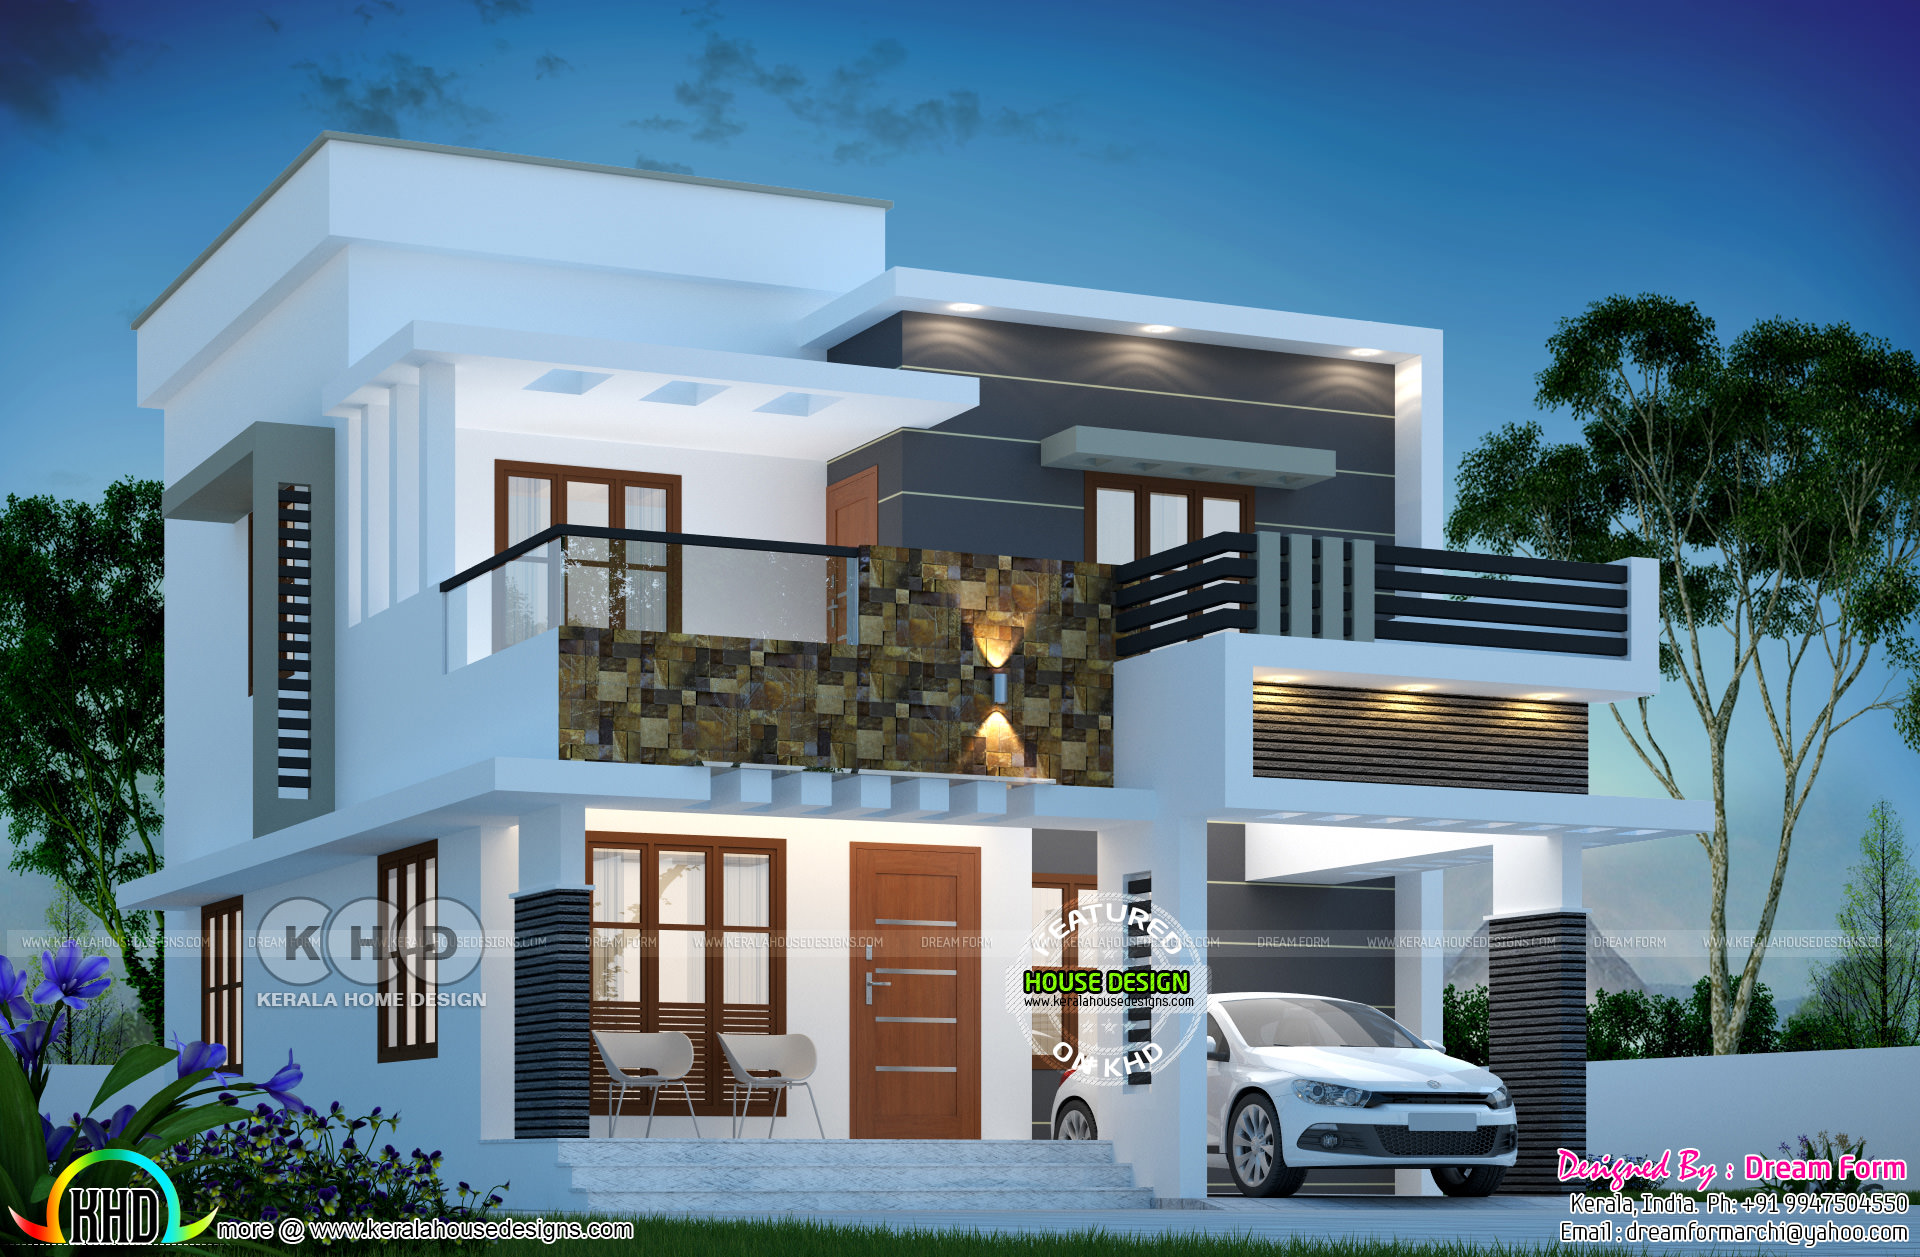 1615 Square Feet 3 Bedroom Modern Flat Roof House Kerala Home Design Bloglovin